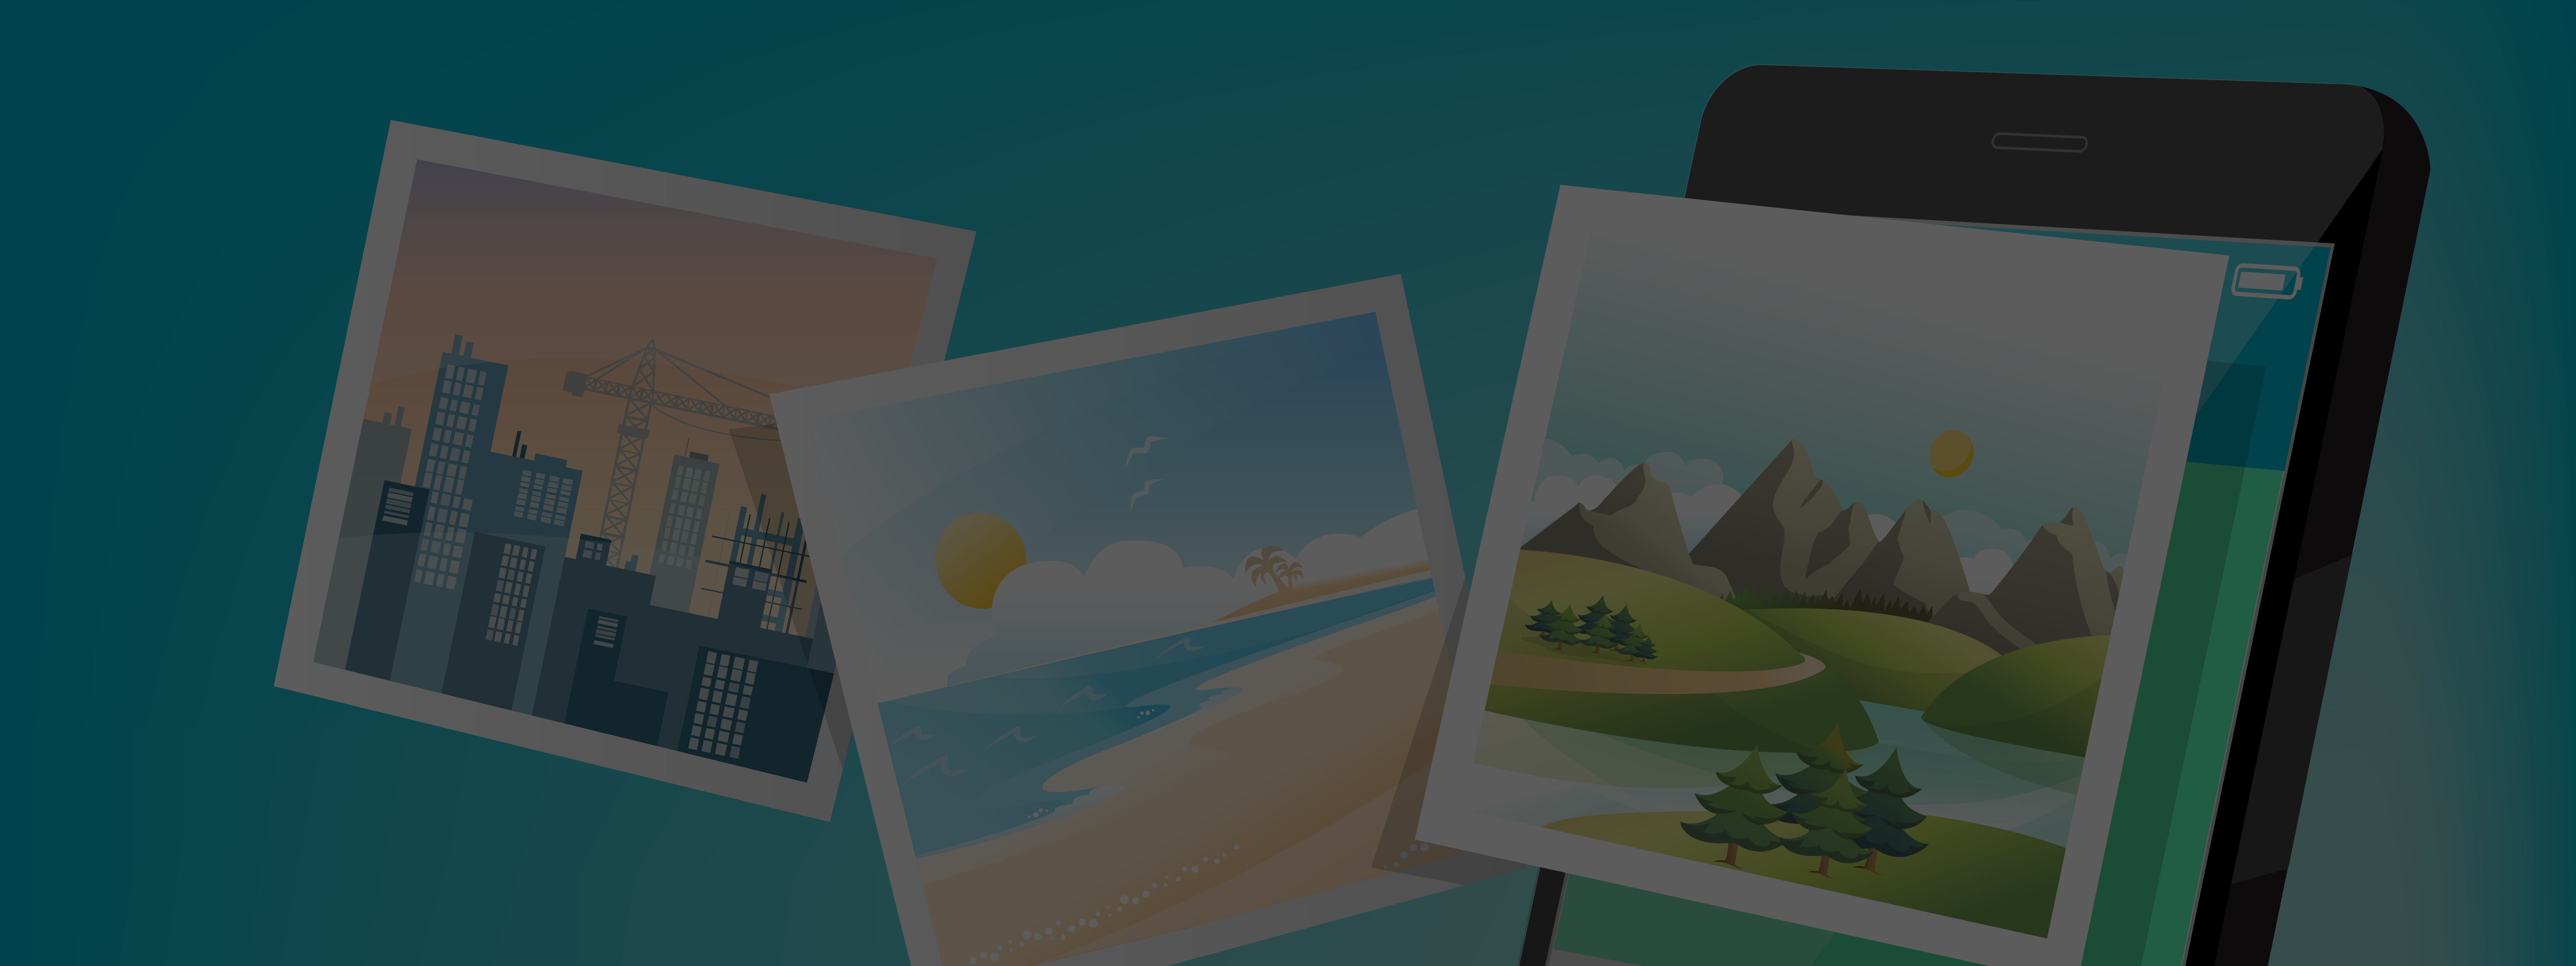 Introducing Image Share Buttons: Tools for your audience to share your best visual content